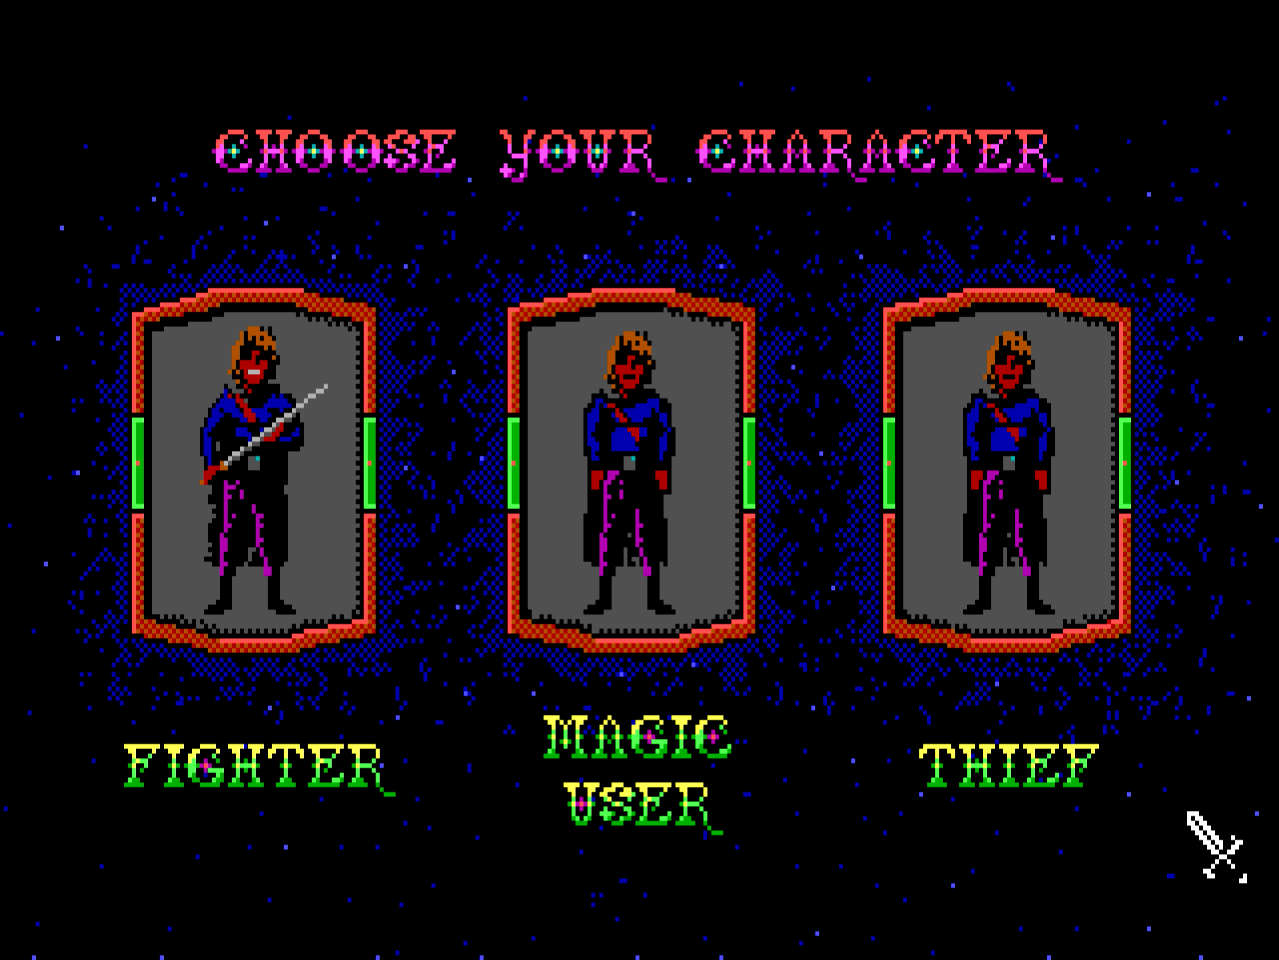 Character selection from the game